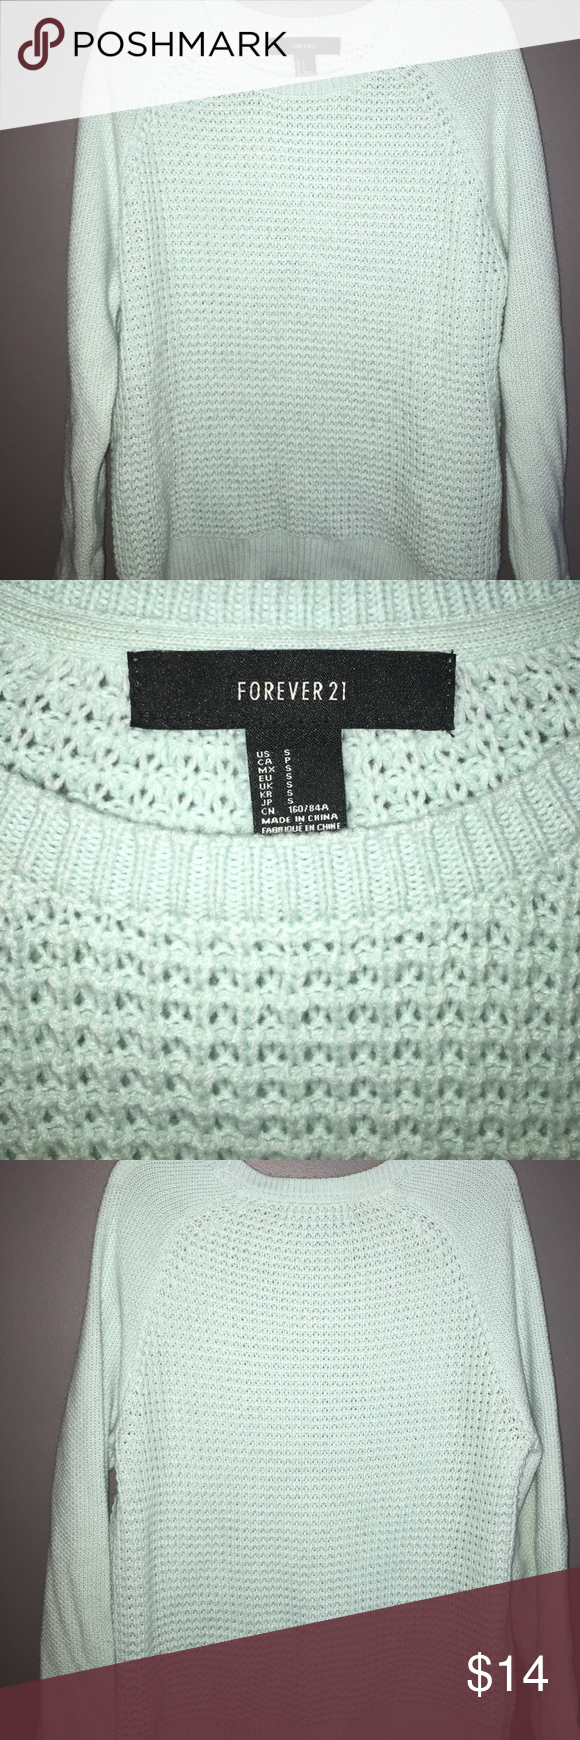 Mint sweater This is a super comfy mint color sweater! Runs big Forever 21 Sweaters Crew & Scoop Necks